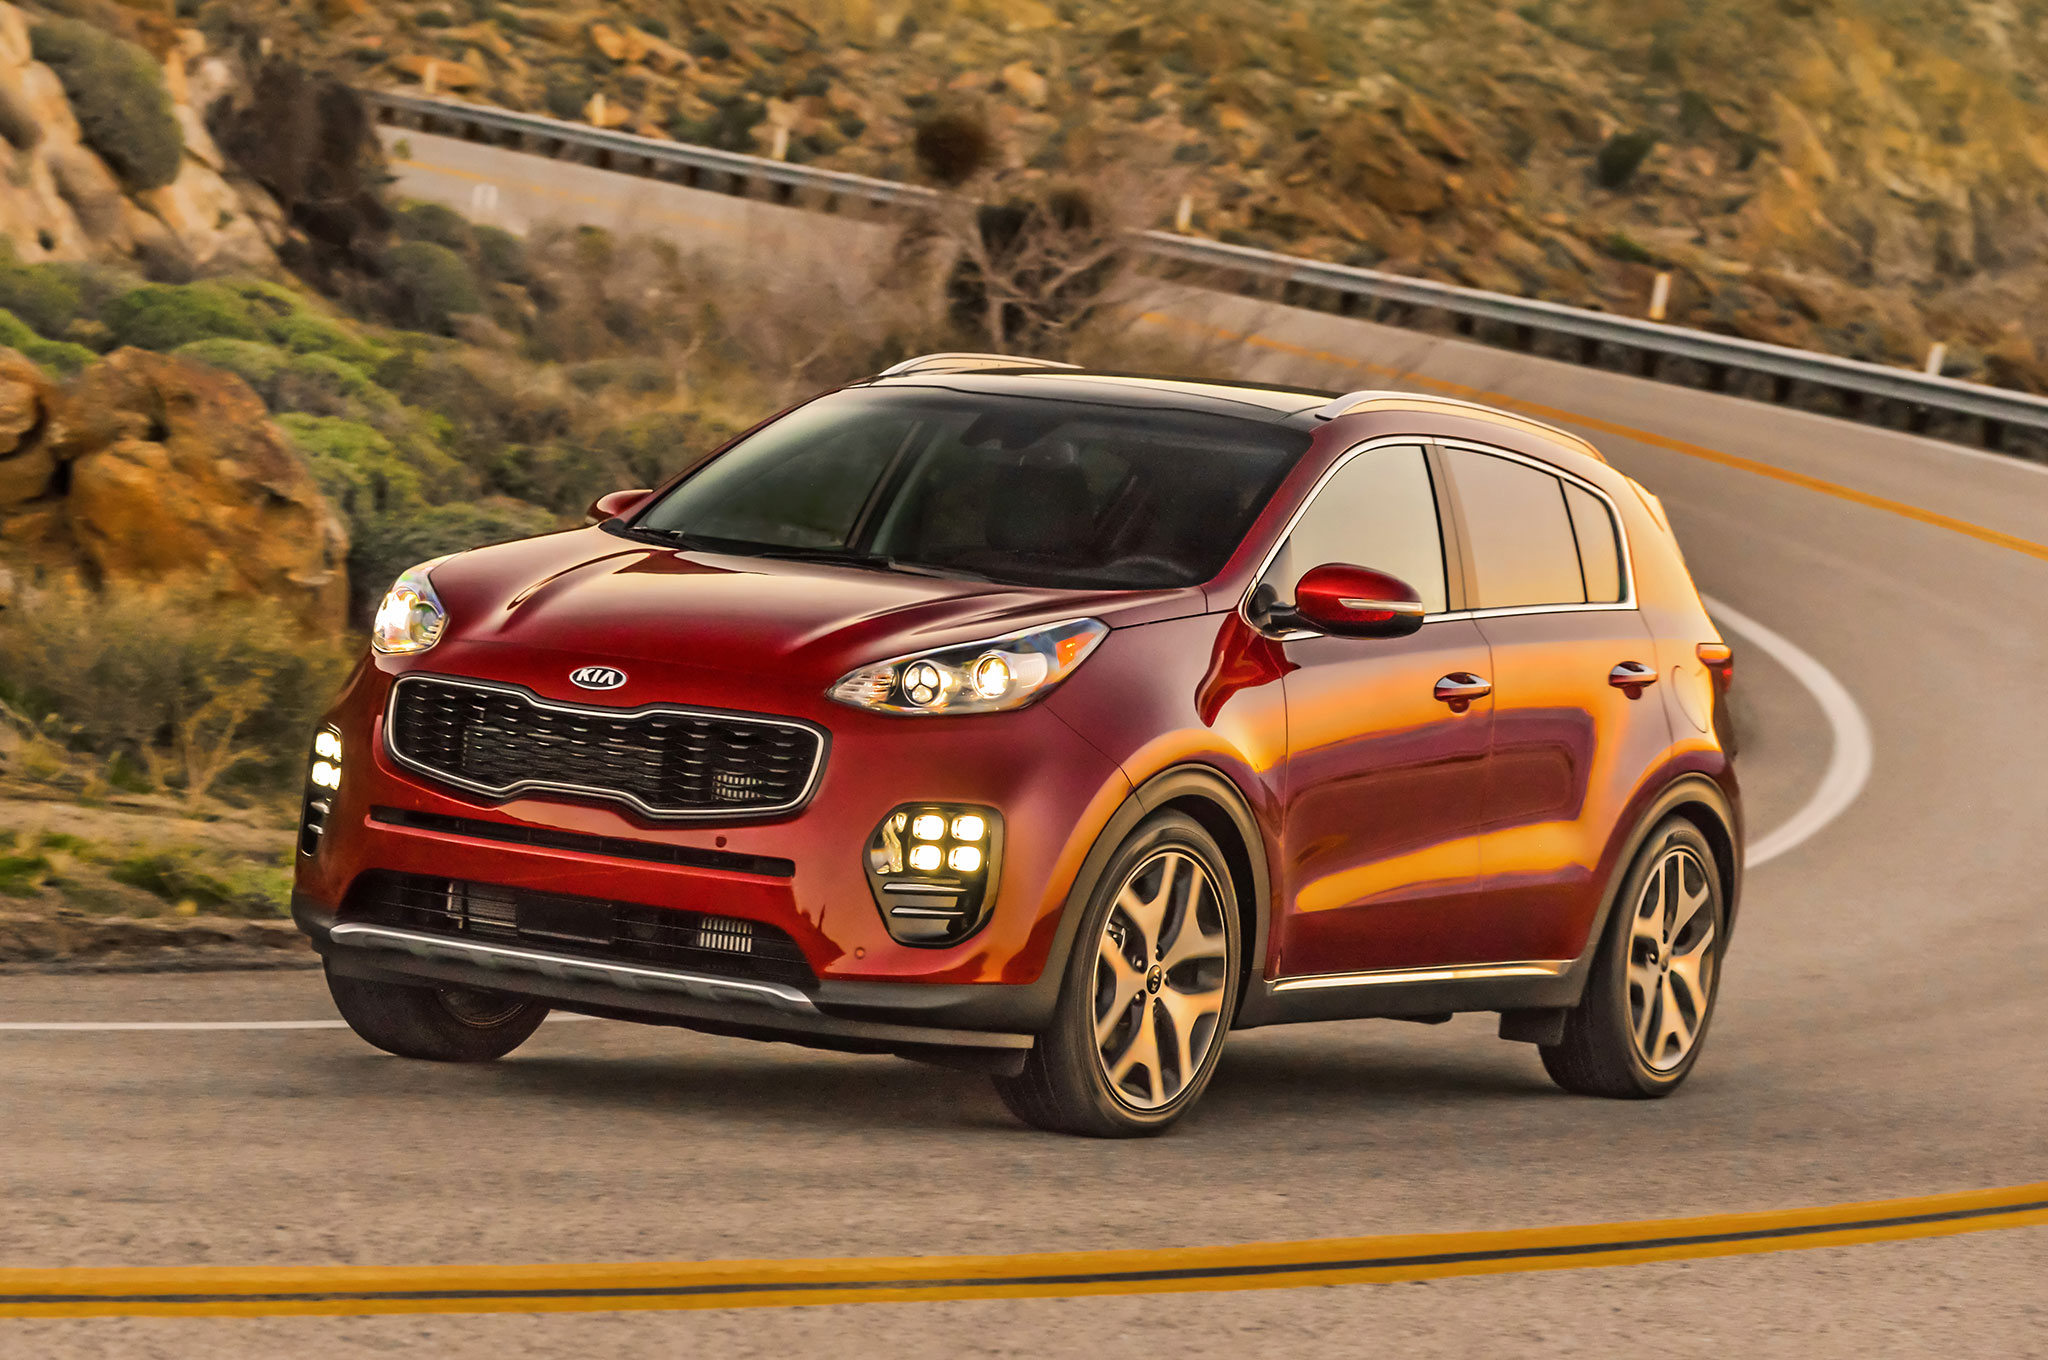 2017 Kia Sportage SX Turbo Front Three Quarter In Motion 01